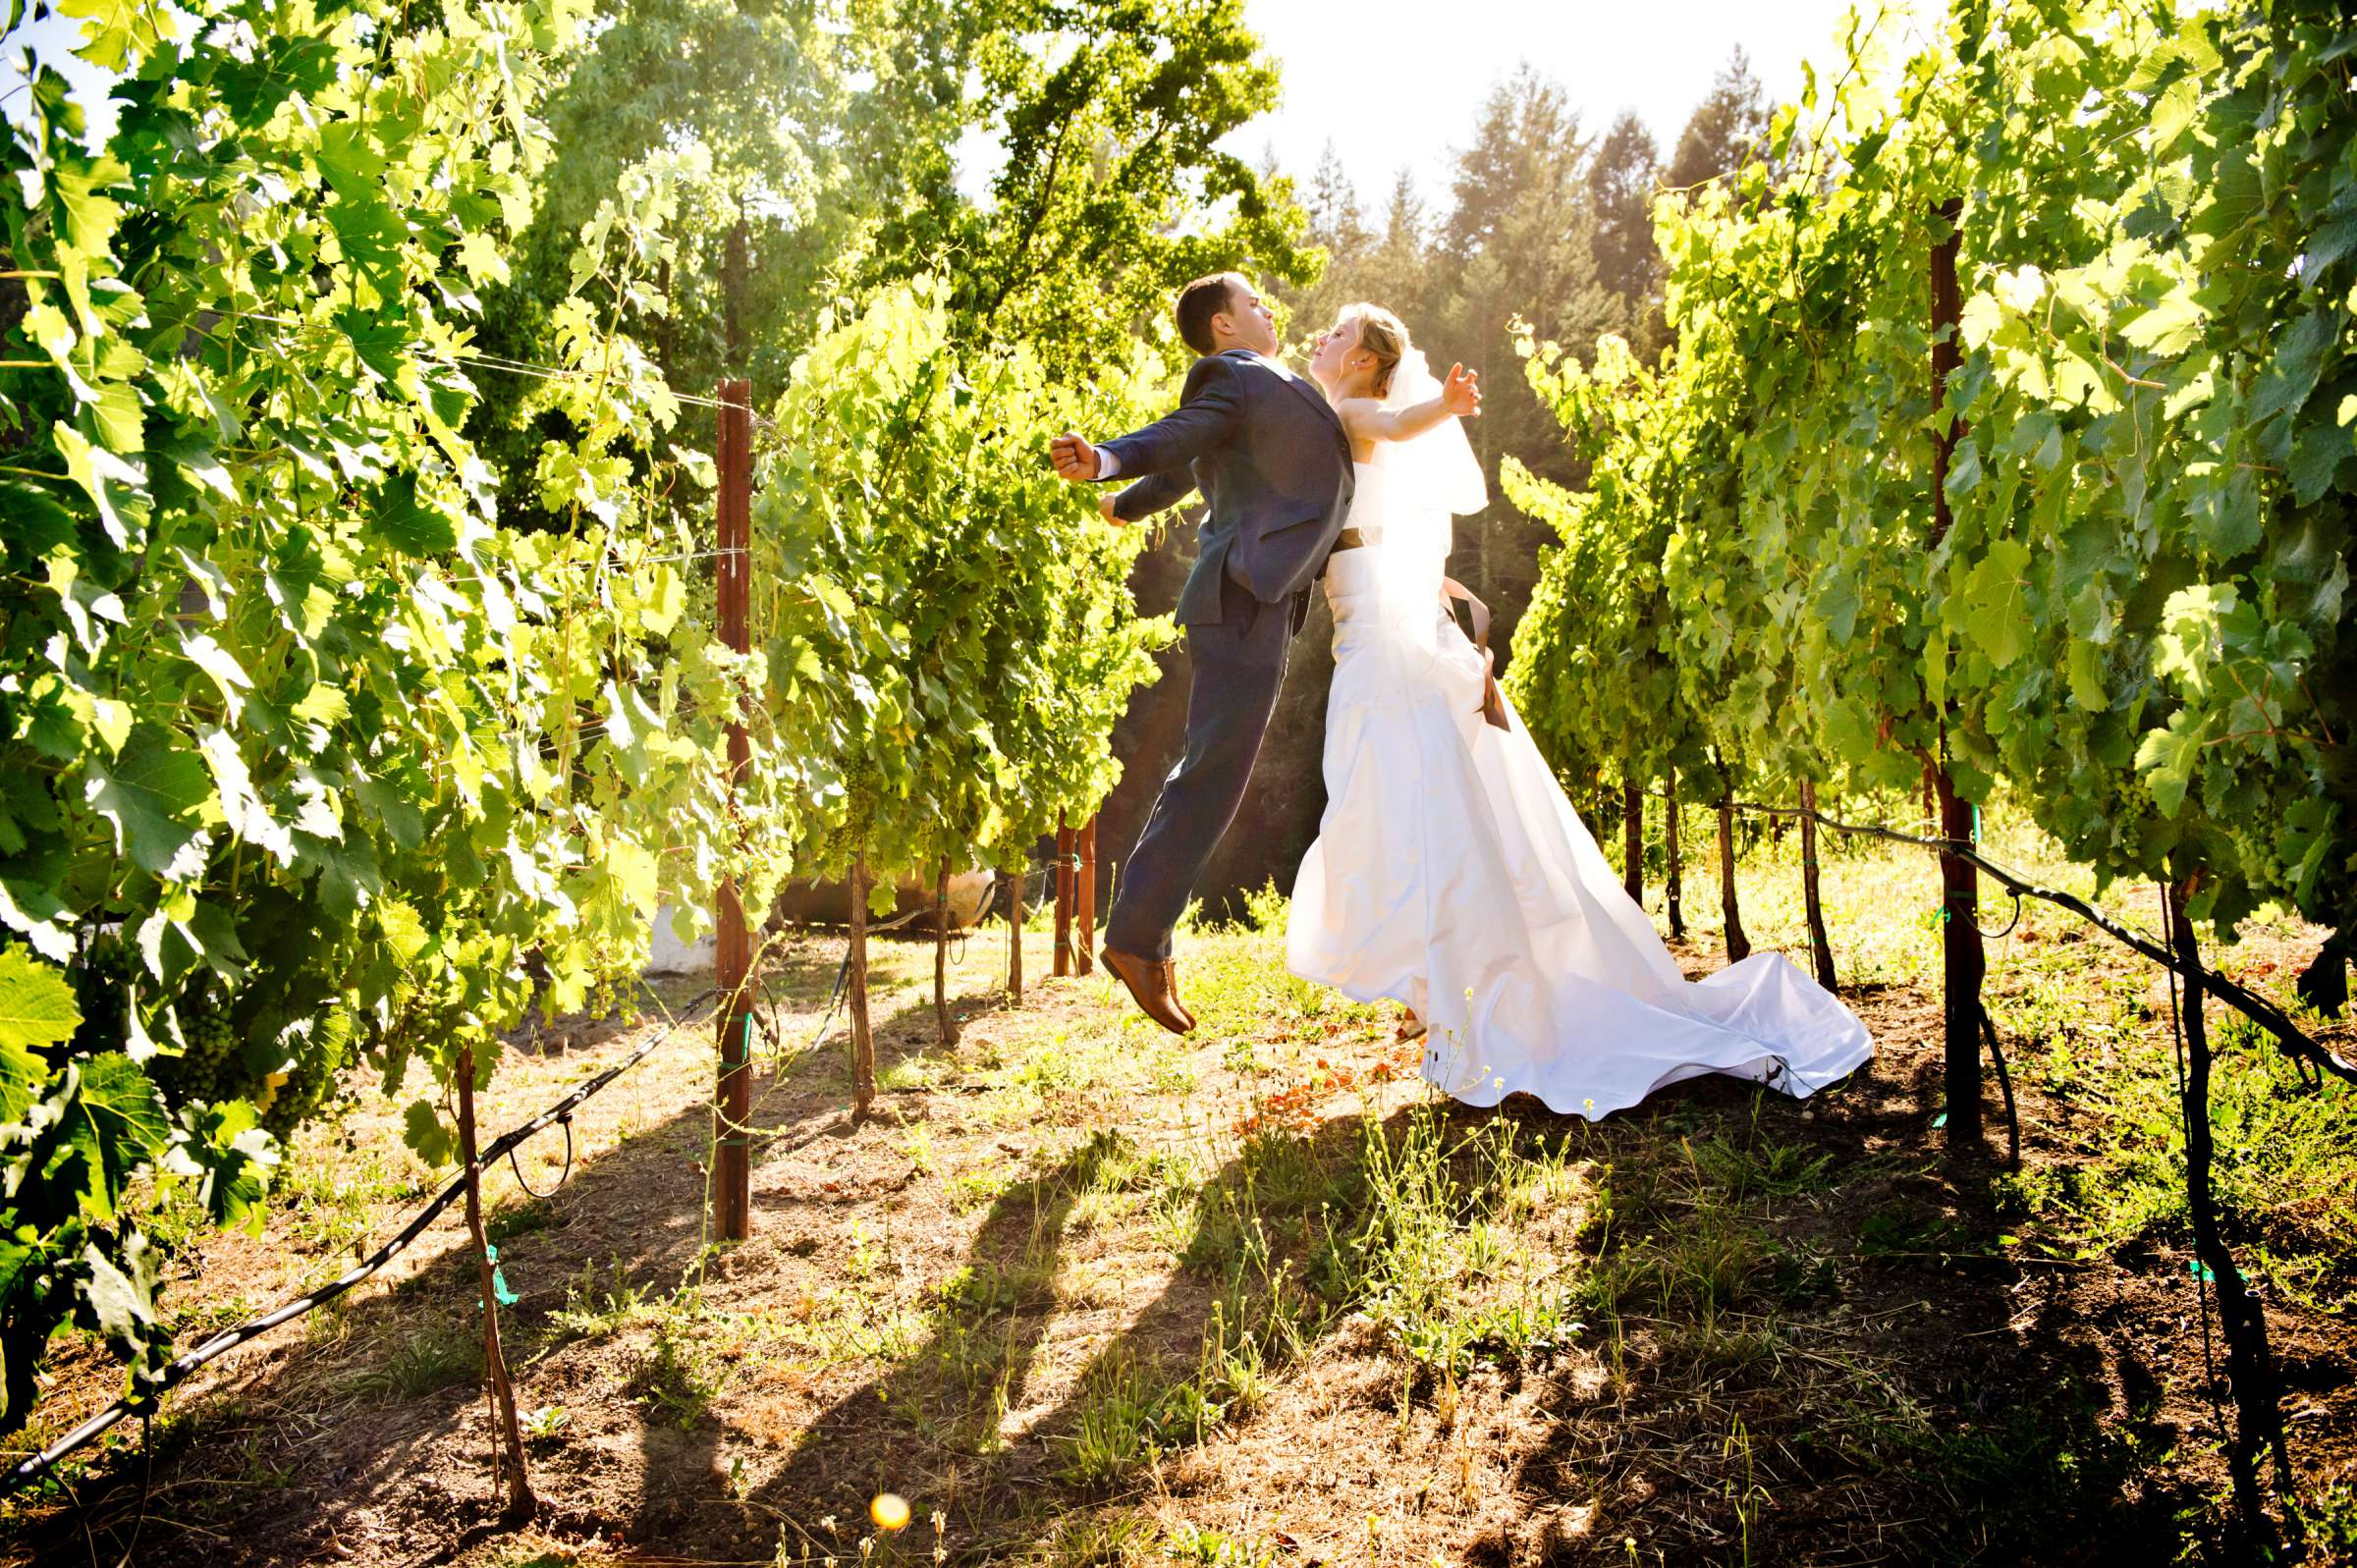 Yates Family Vineyard Wedding coordinated by Napa Valley Celebrations, Katie and Patrick Wedding Photo #356101 by True Photography